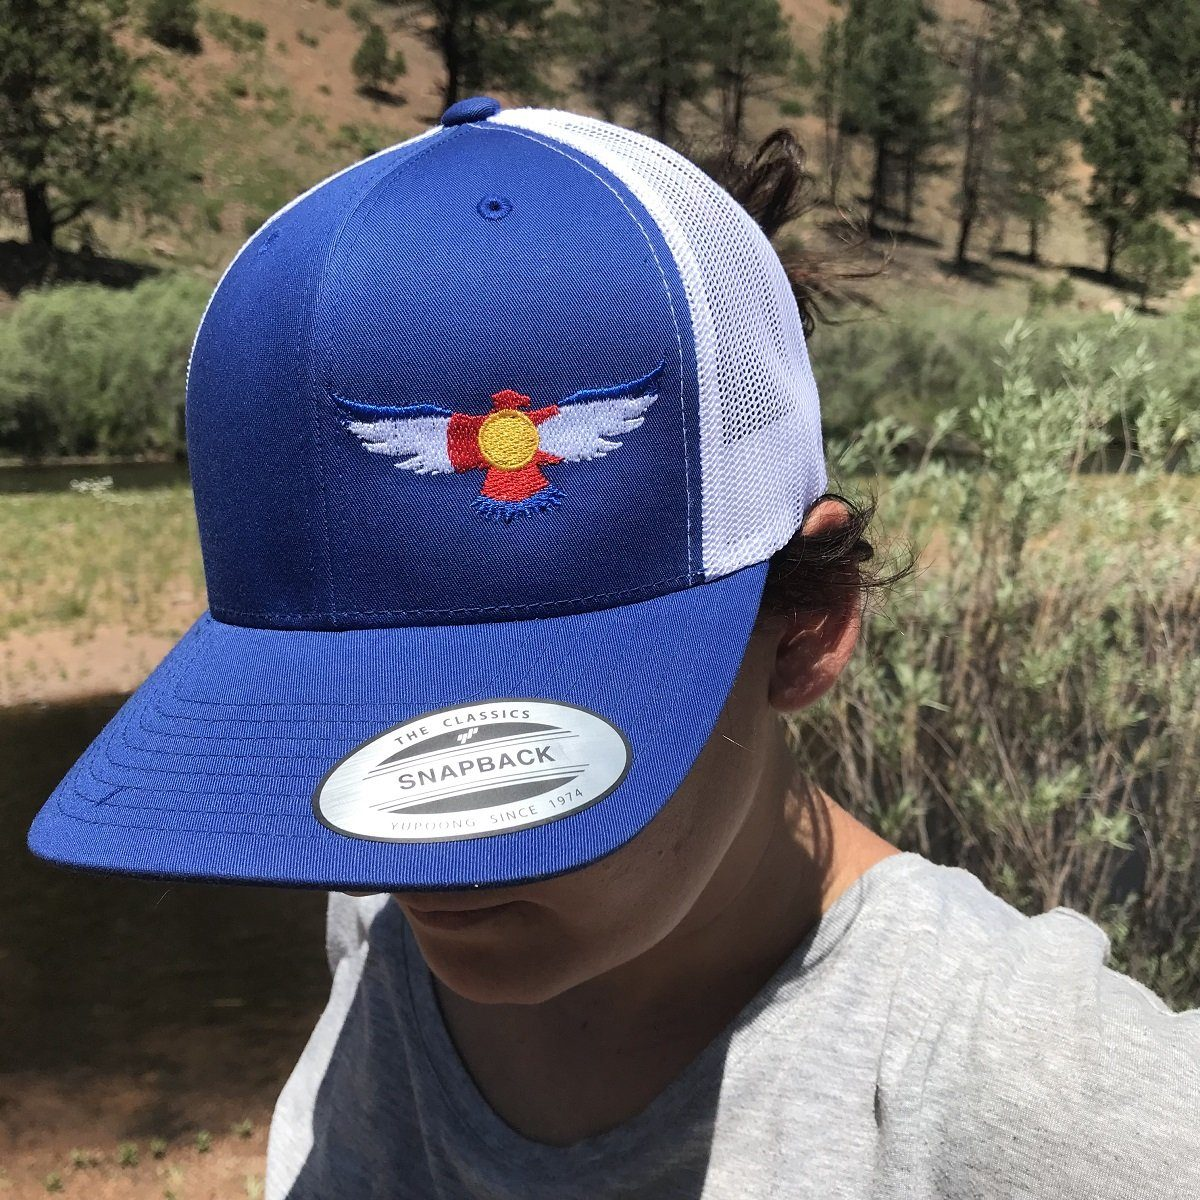 Colorado Snap back Stealth Eagle Cap